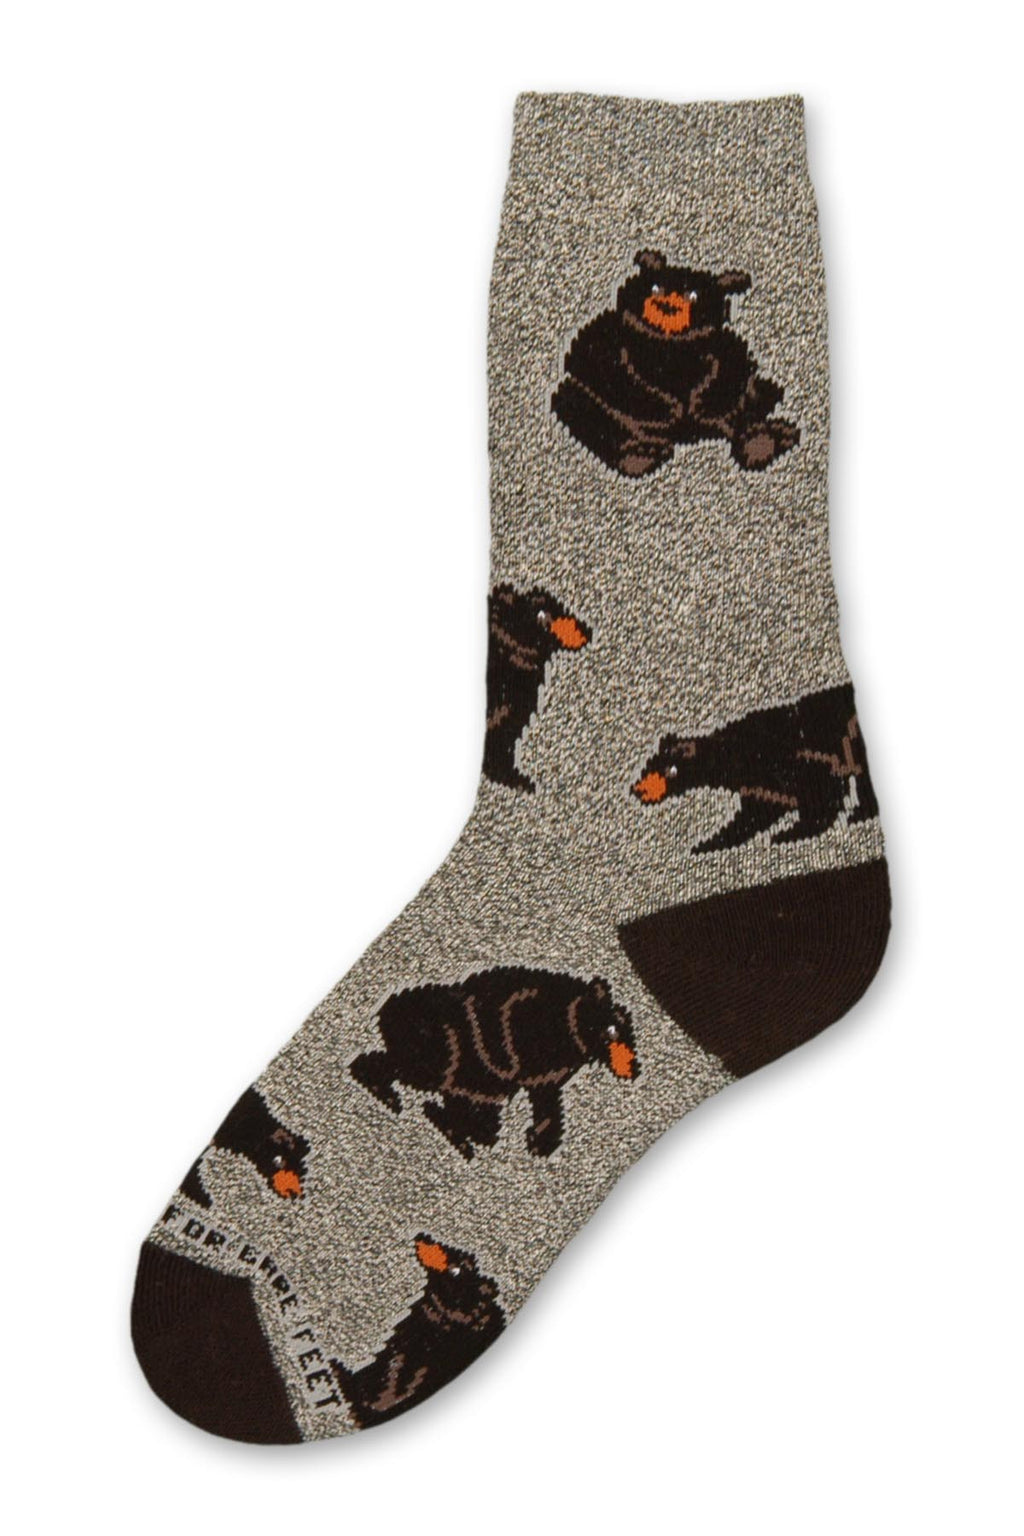 On a Marbled Grey background with Black Heels and Toes are Poses of Bears. They are Sitting Standing and Looking at each other.